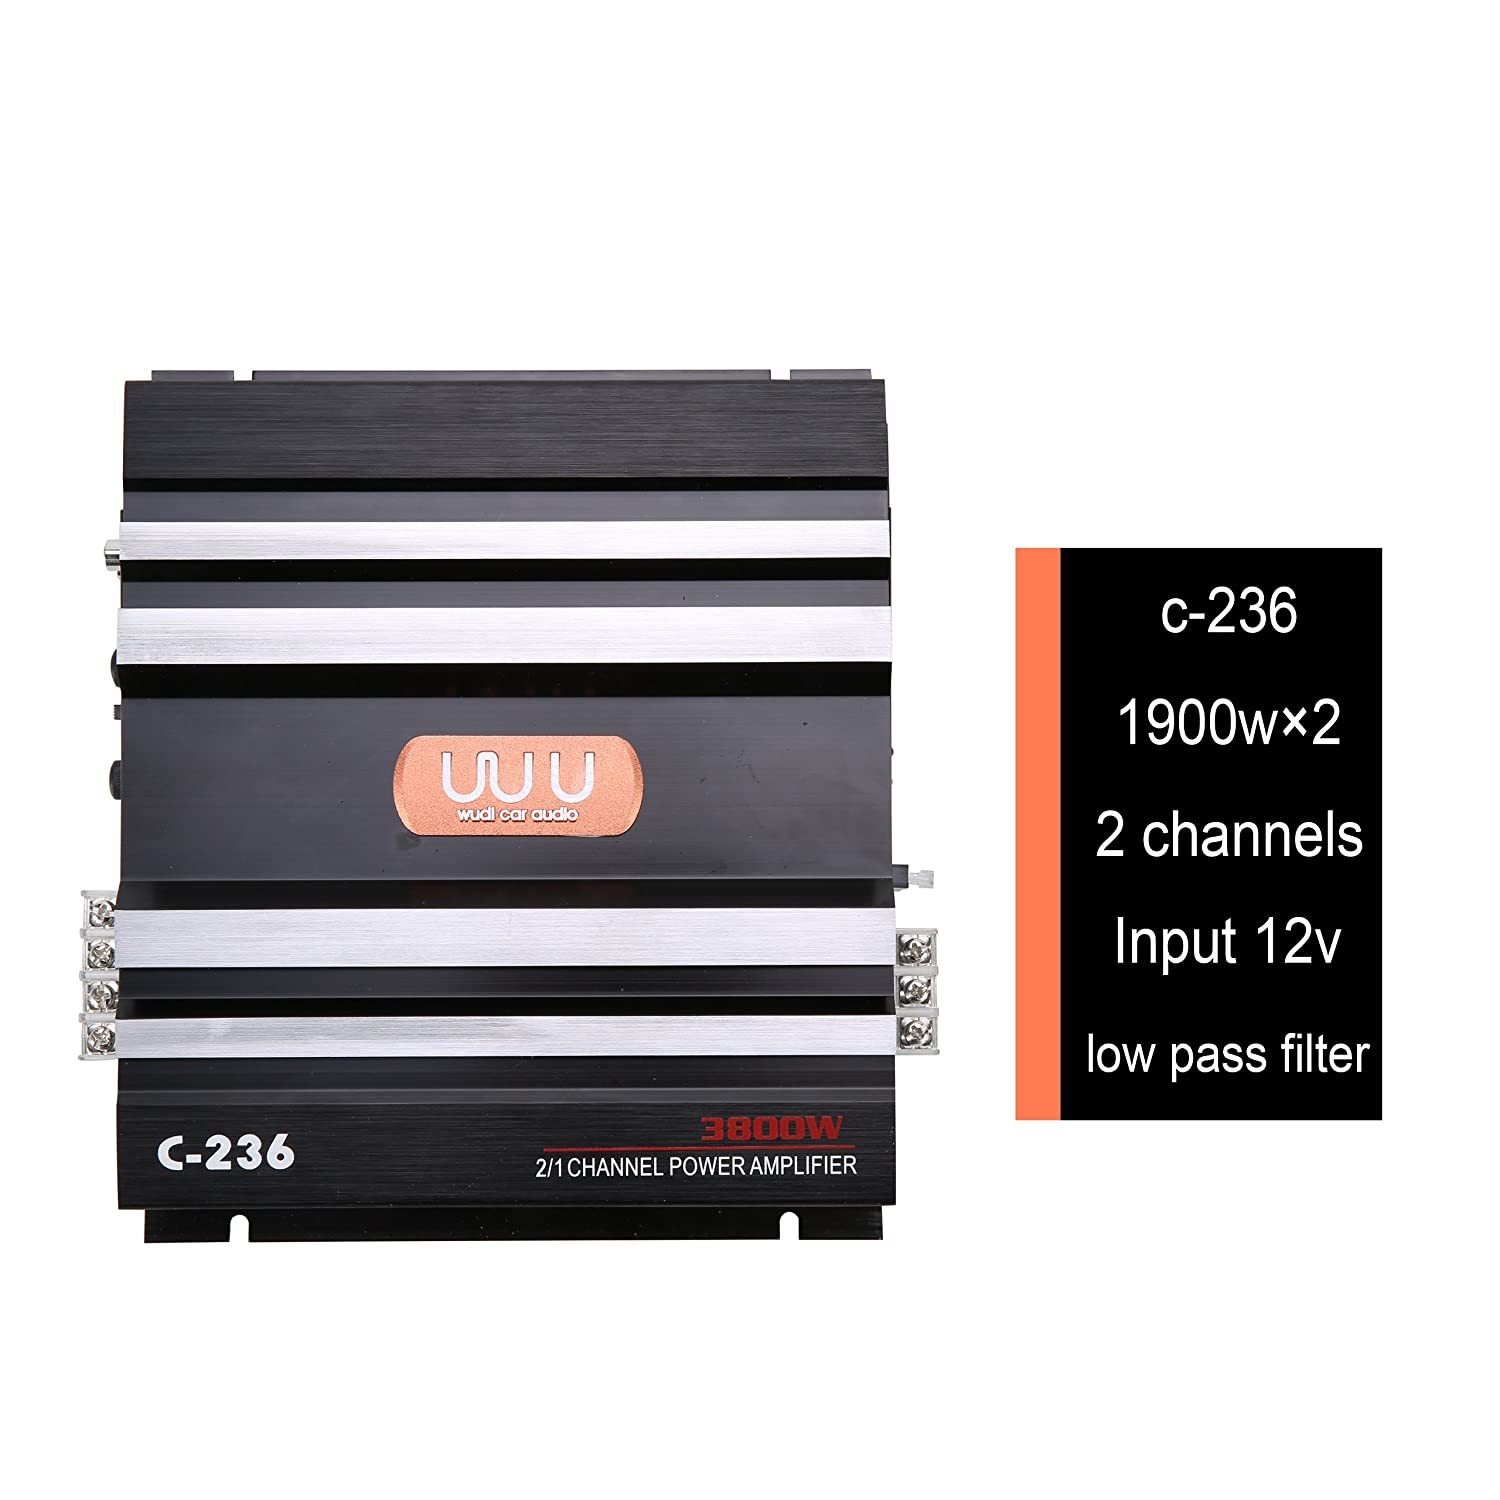 Yaeccc C 236 12v 2 Channel Powerful Car Audio Amplifier Low Pass Filter And Circuit Diagram Super Bass Amp Aluminum Electronics